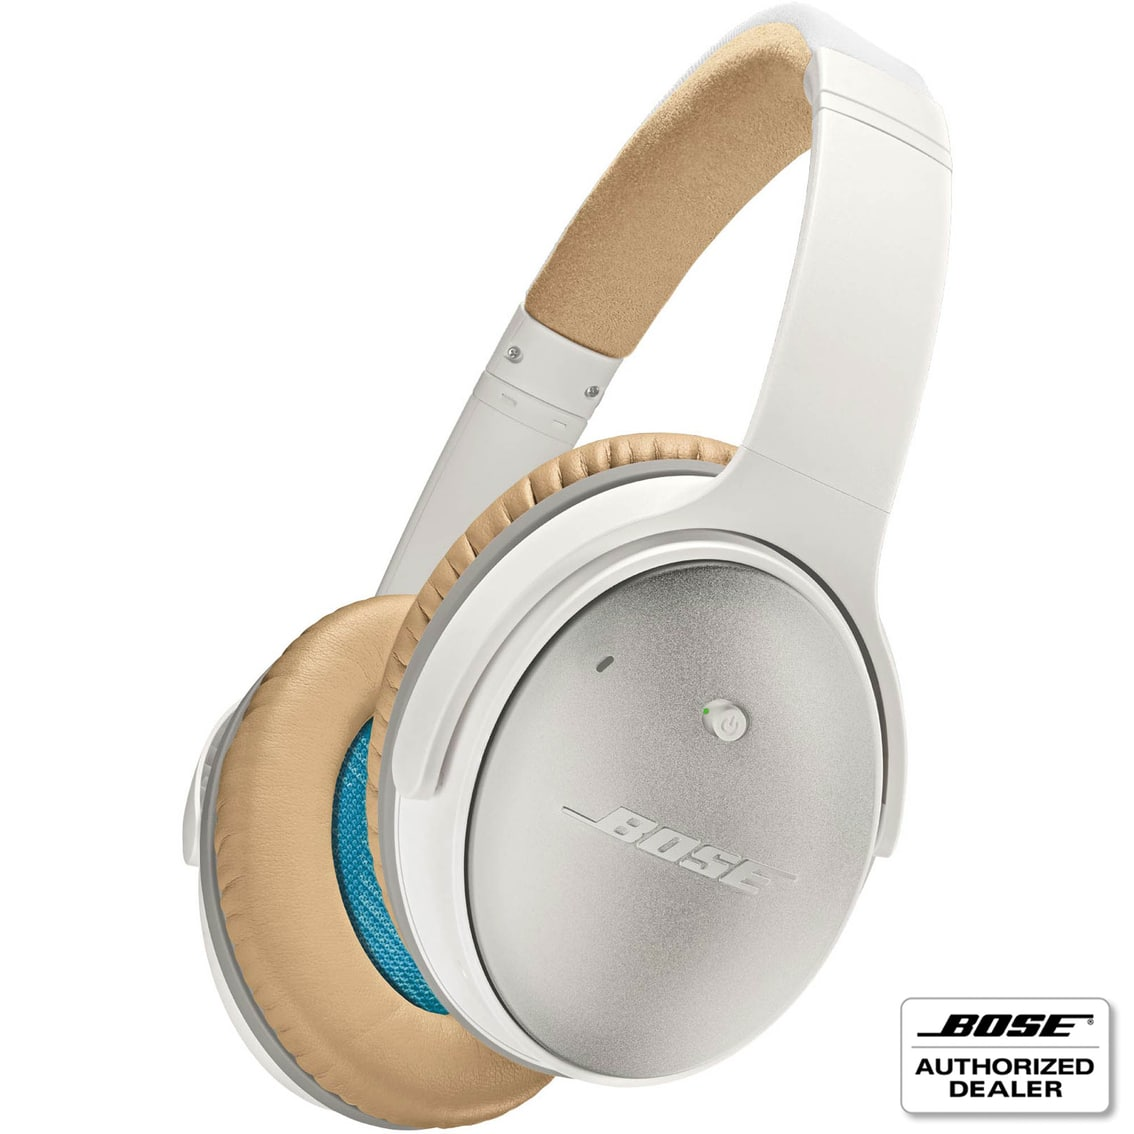 f842bb3a456 Bose QuietComfort 25 QC25 Noise Cancelling Headphones for Apple - Military  Only- AAFES $135 shipped - Sept 2-3 only